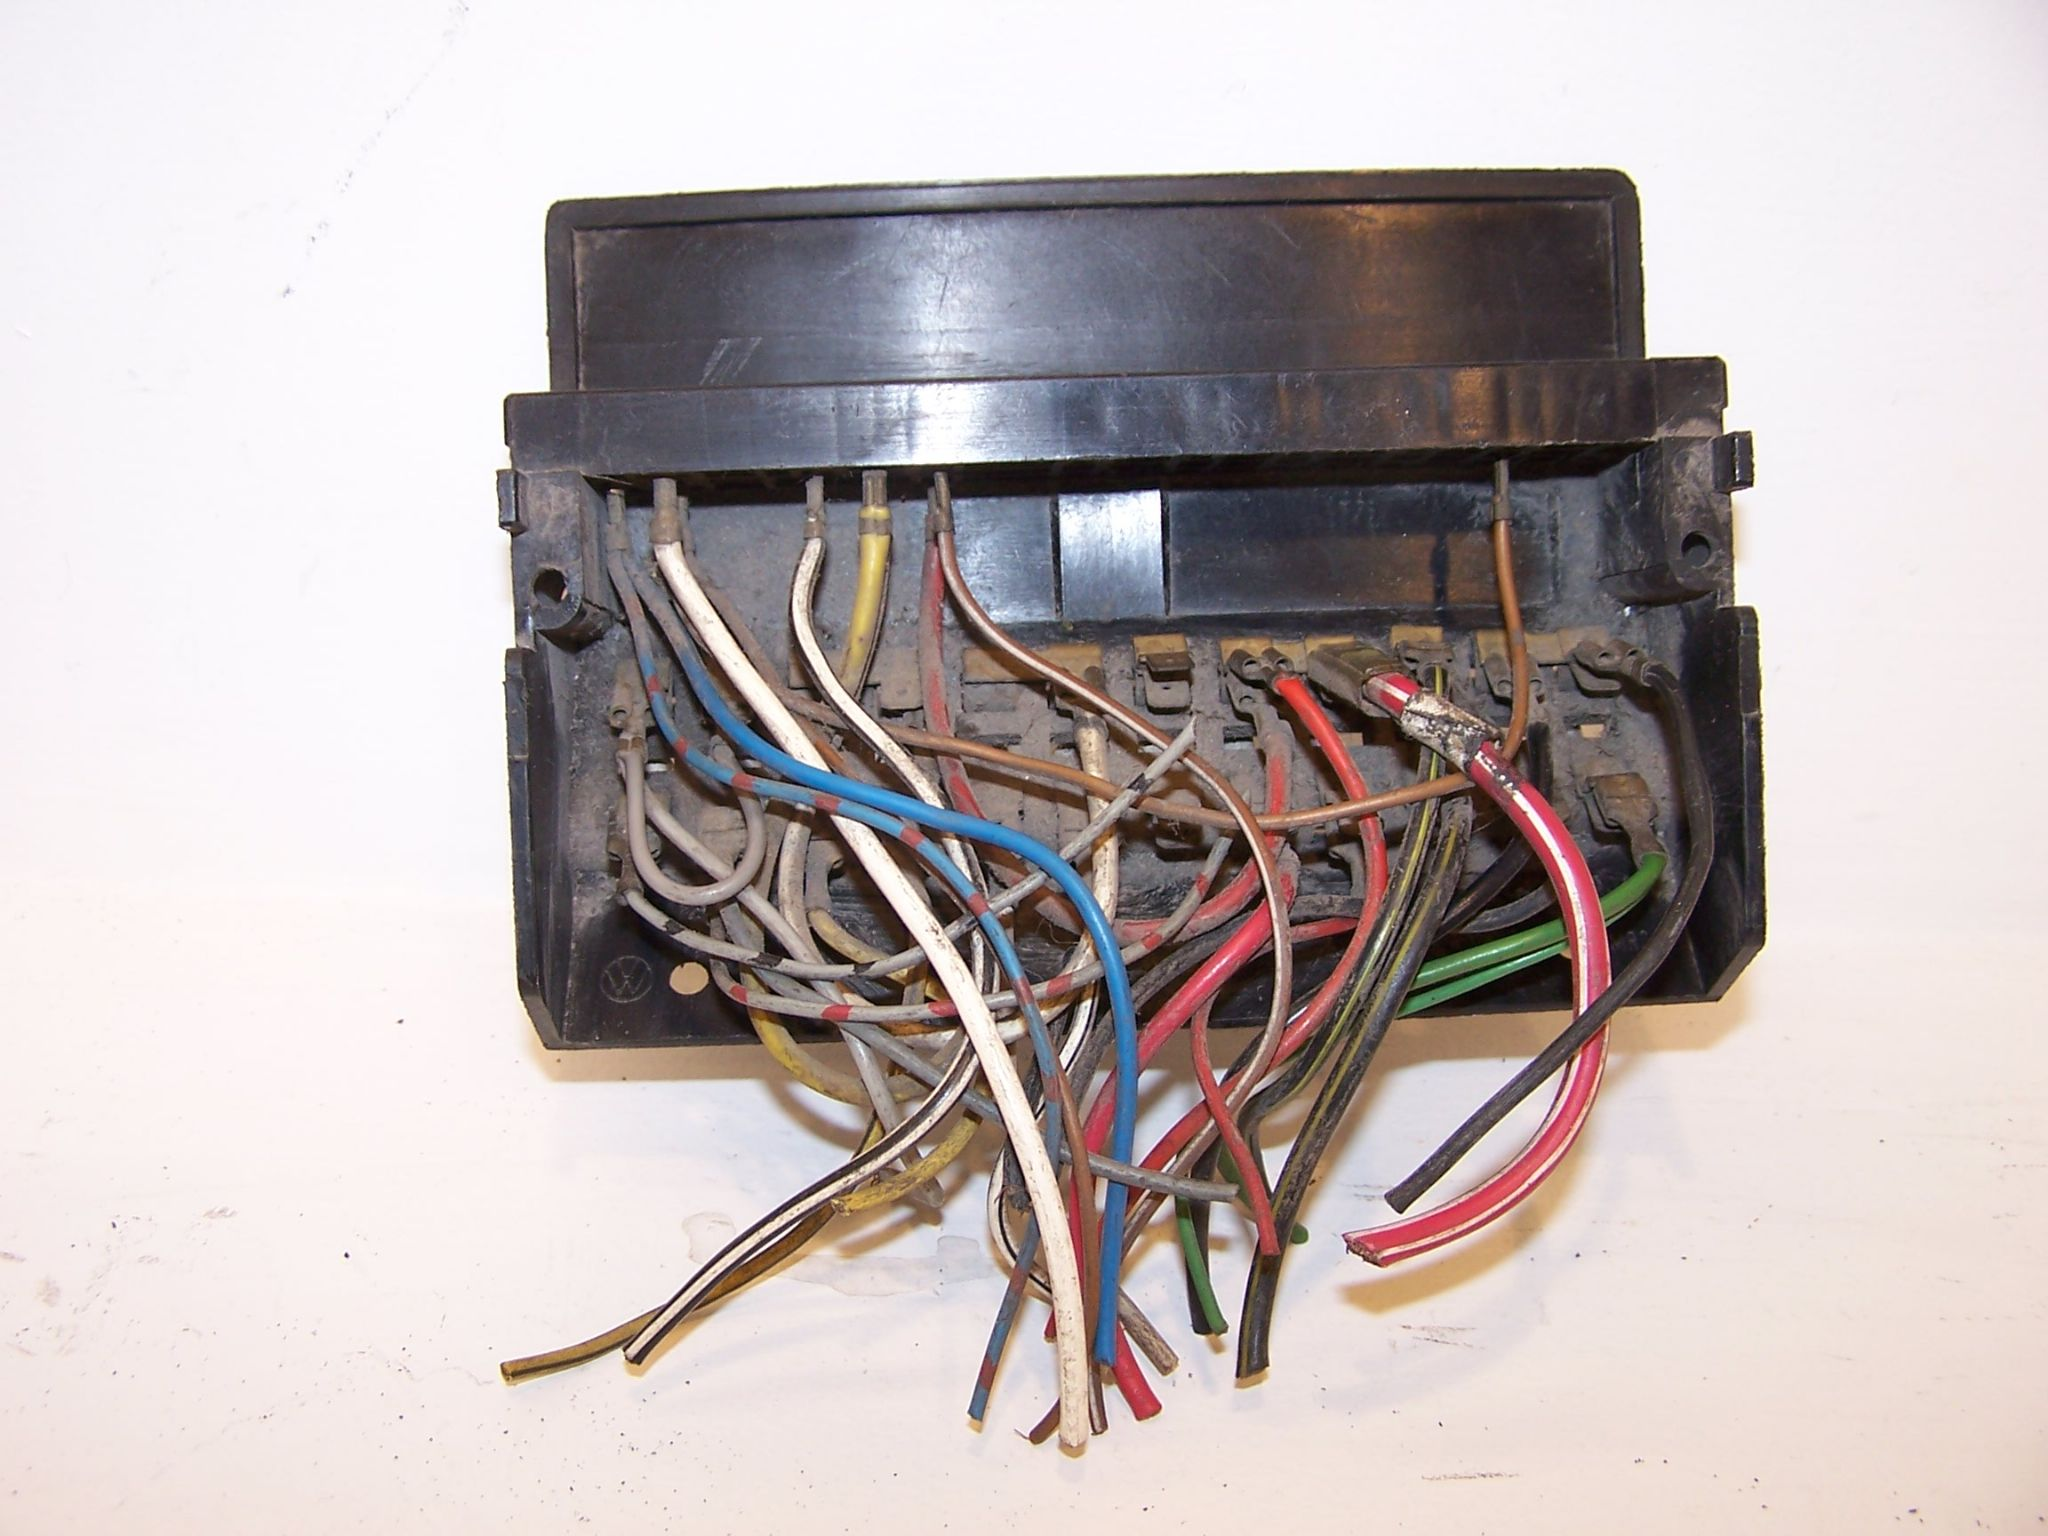 Fuse Box VW Beetle 1303 Type 2 1974 1979